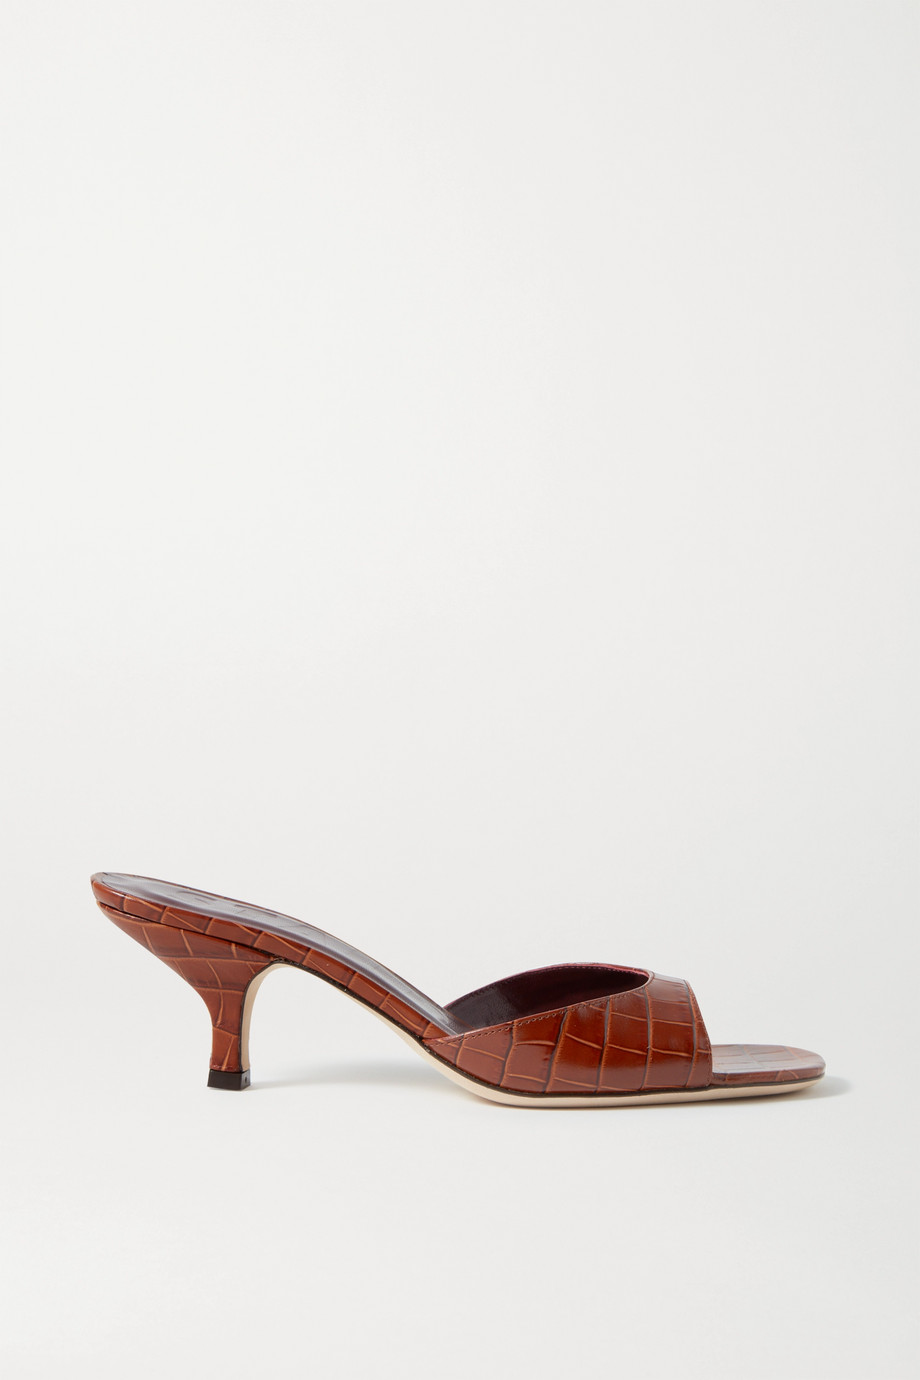 STAUD Gene croc-effect leather sandals